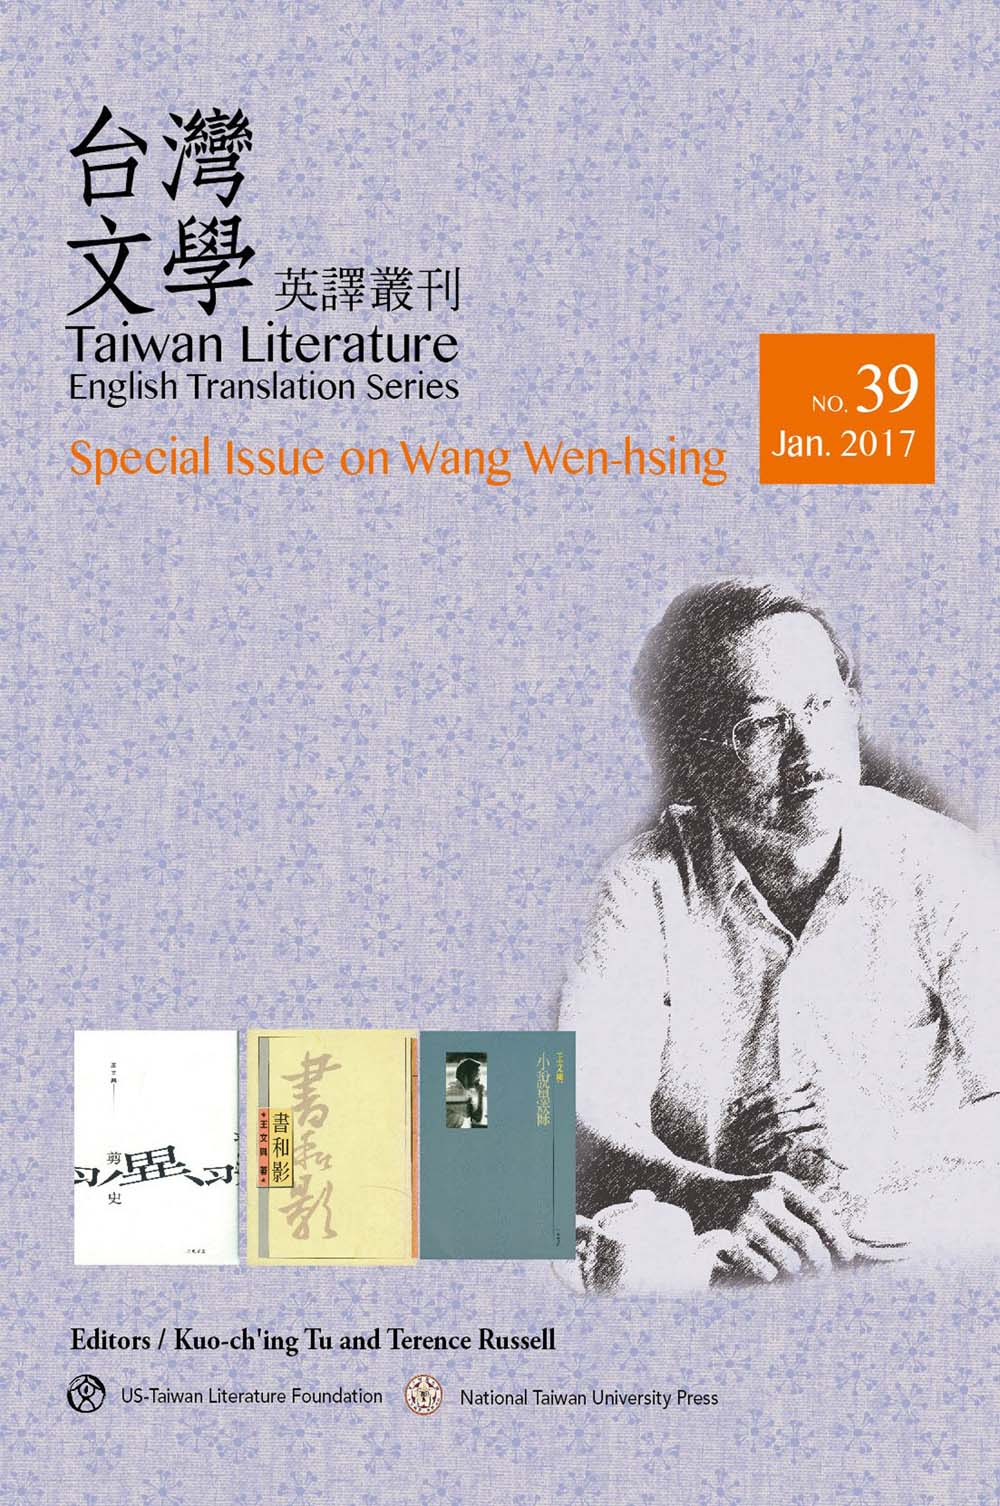 Taiwan Literature: English Translation Series 39(台灣文學英譯叢刊(No.39):王文興專輯)